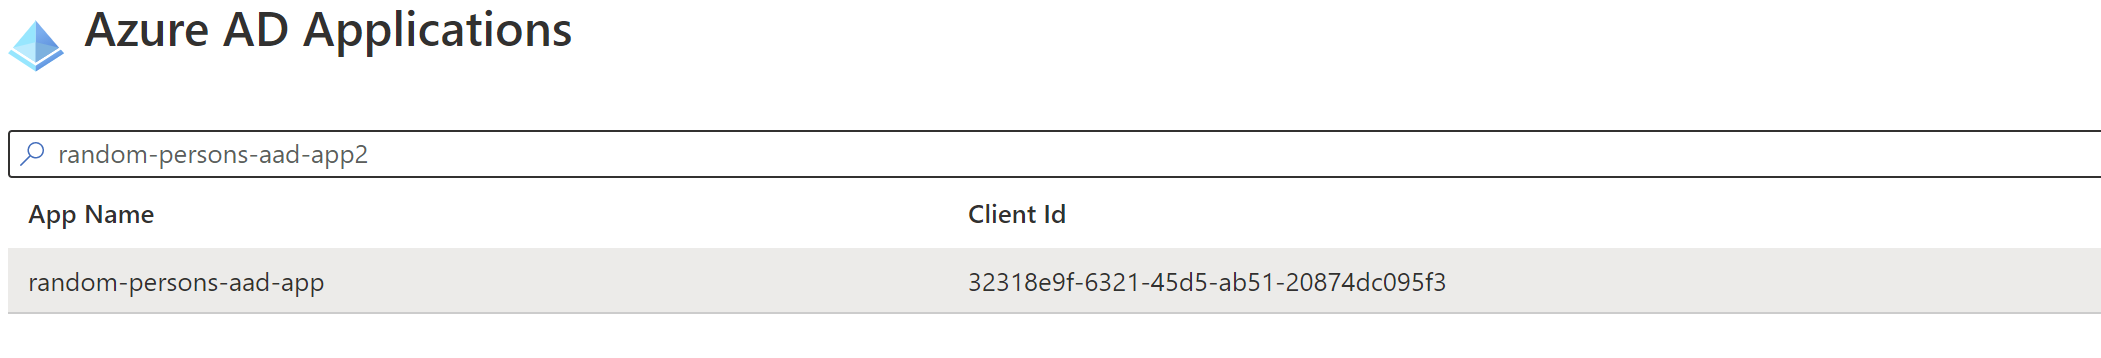 authentication client app name and id